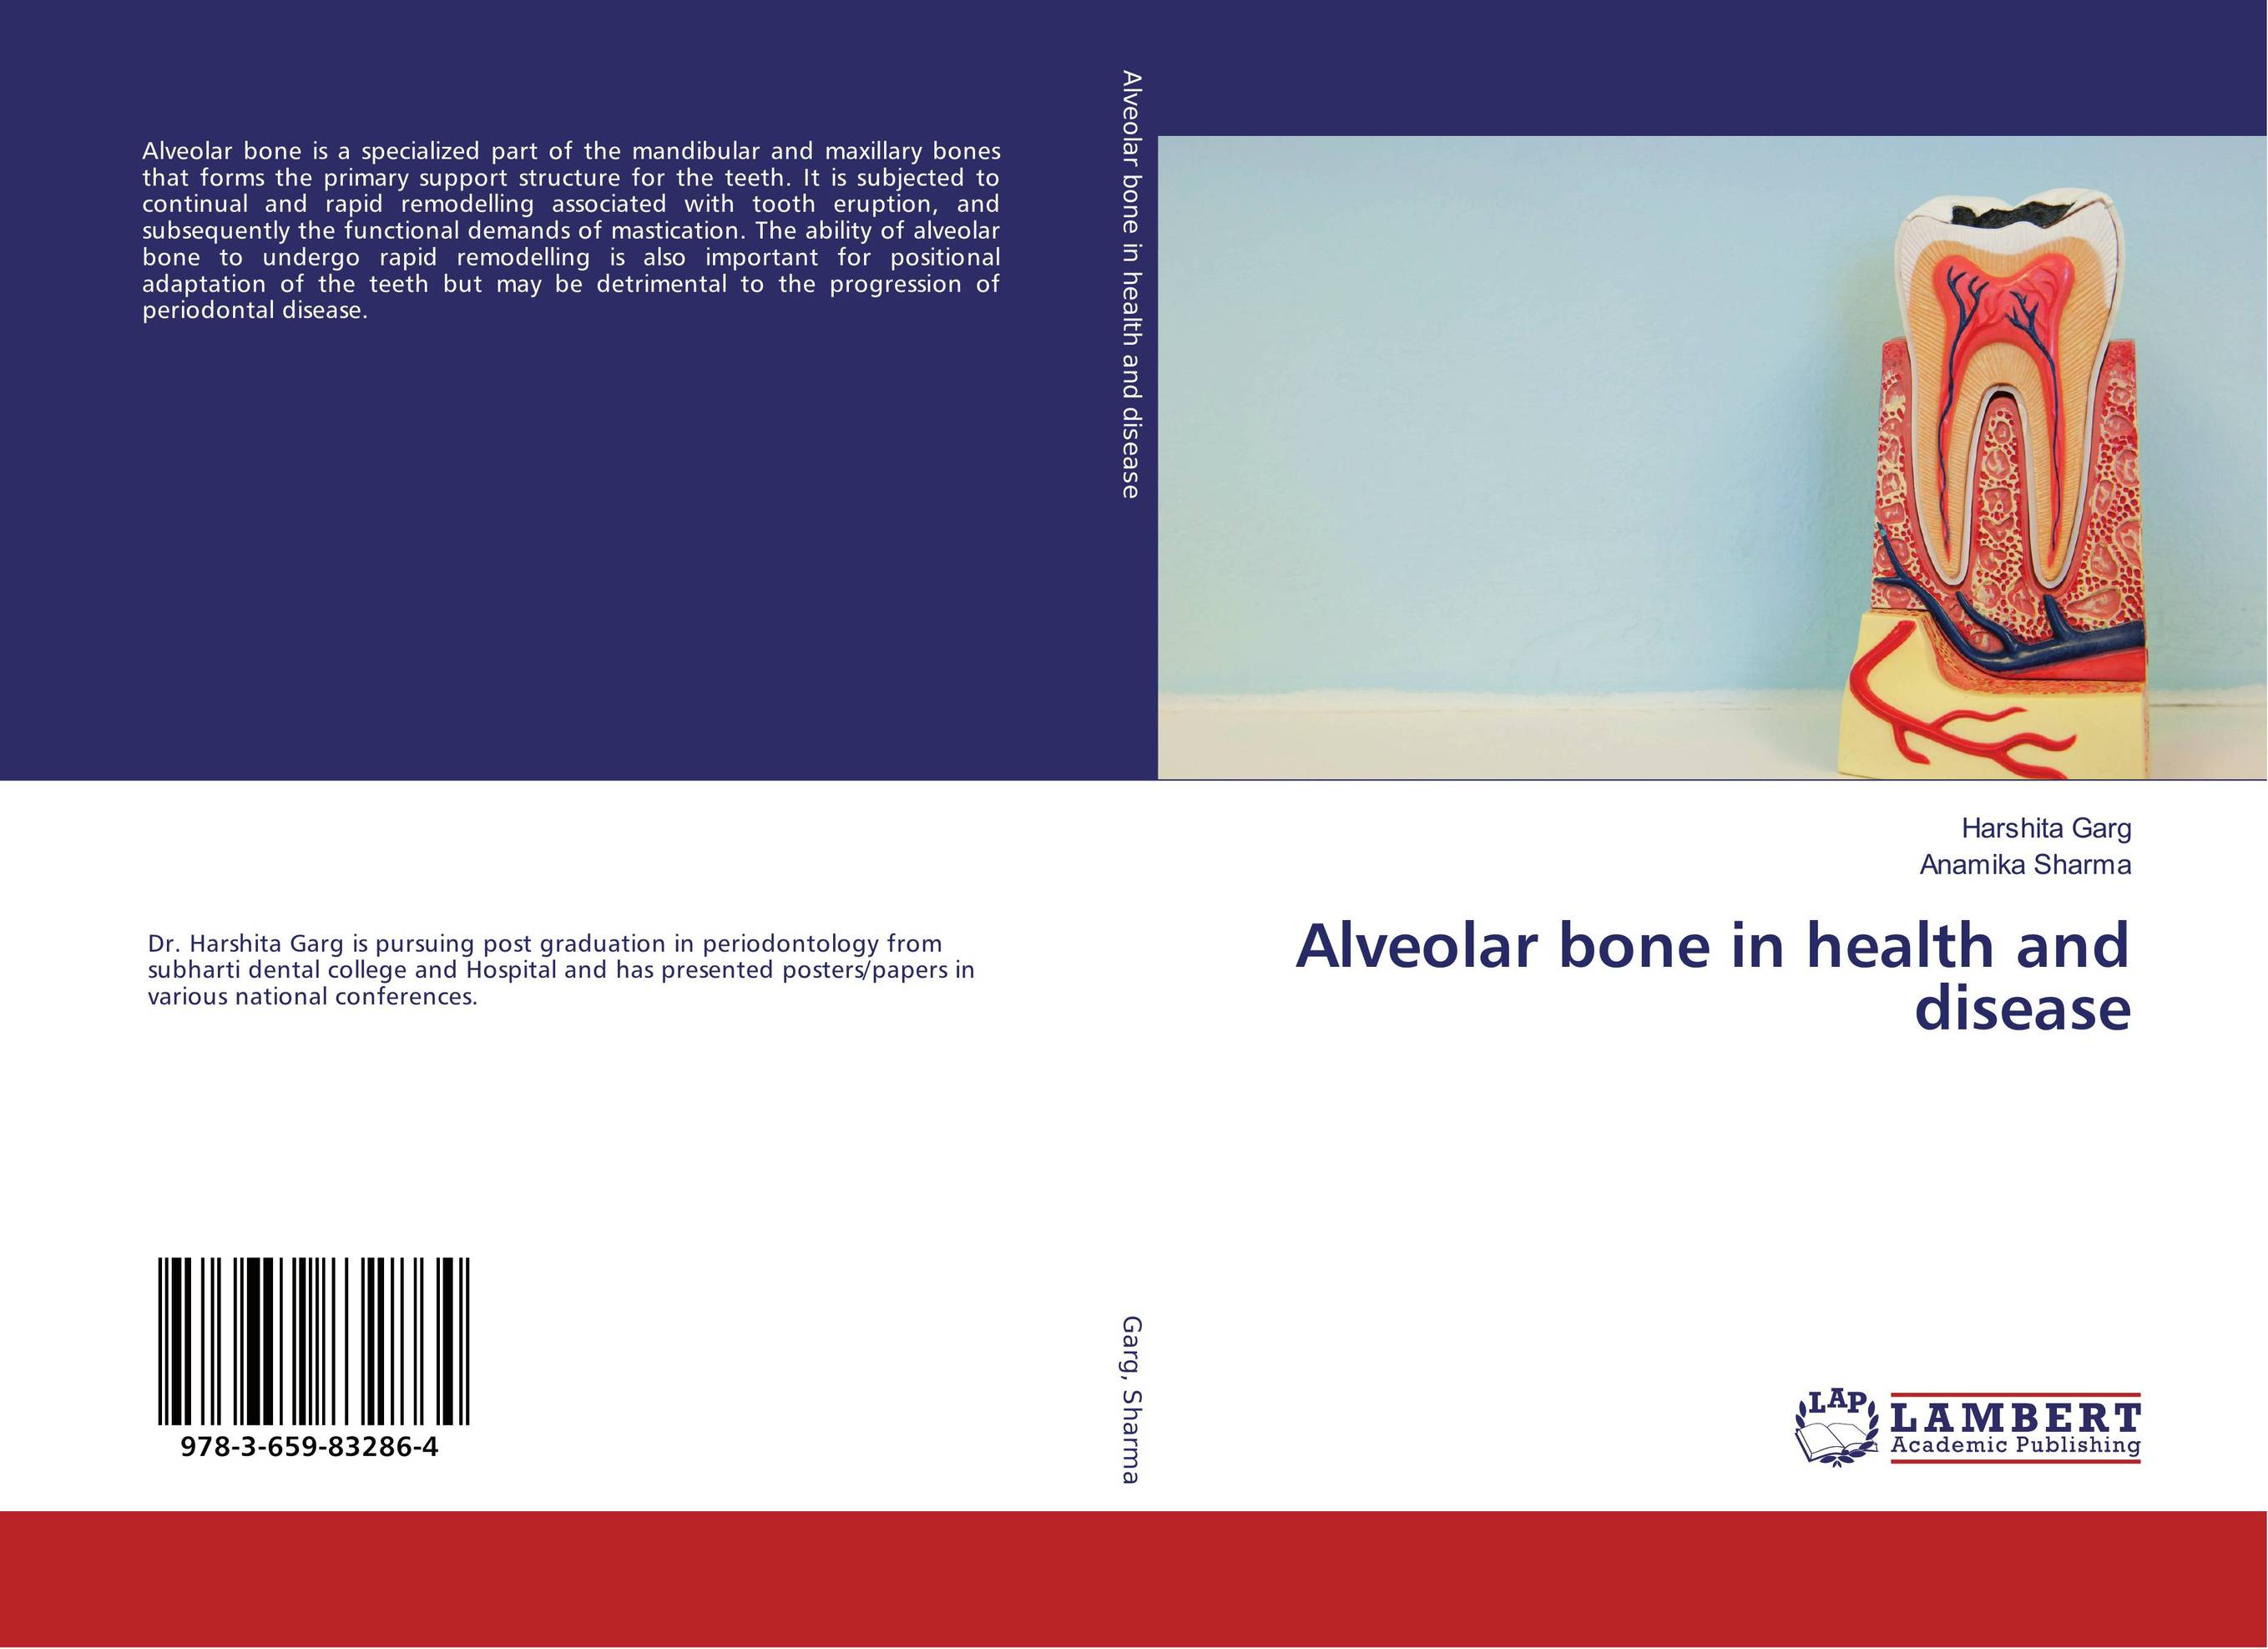 Alveolar bone in health and disease factors associated with bone health in young adults